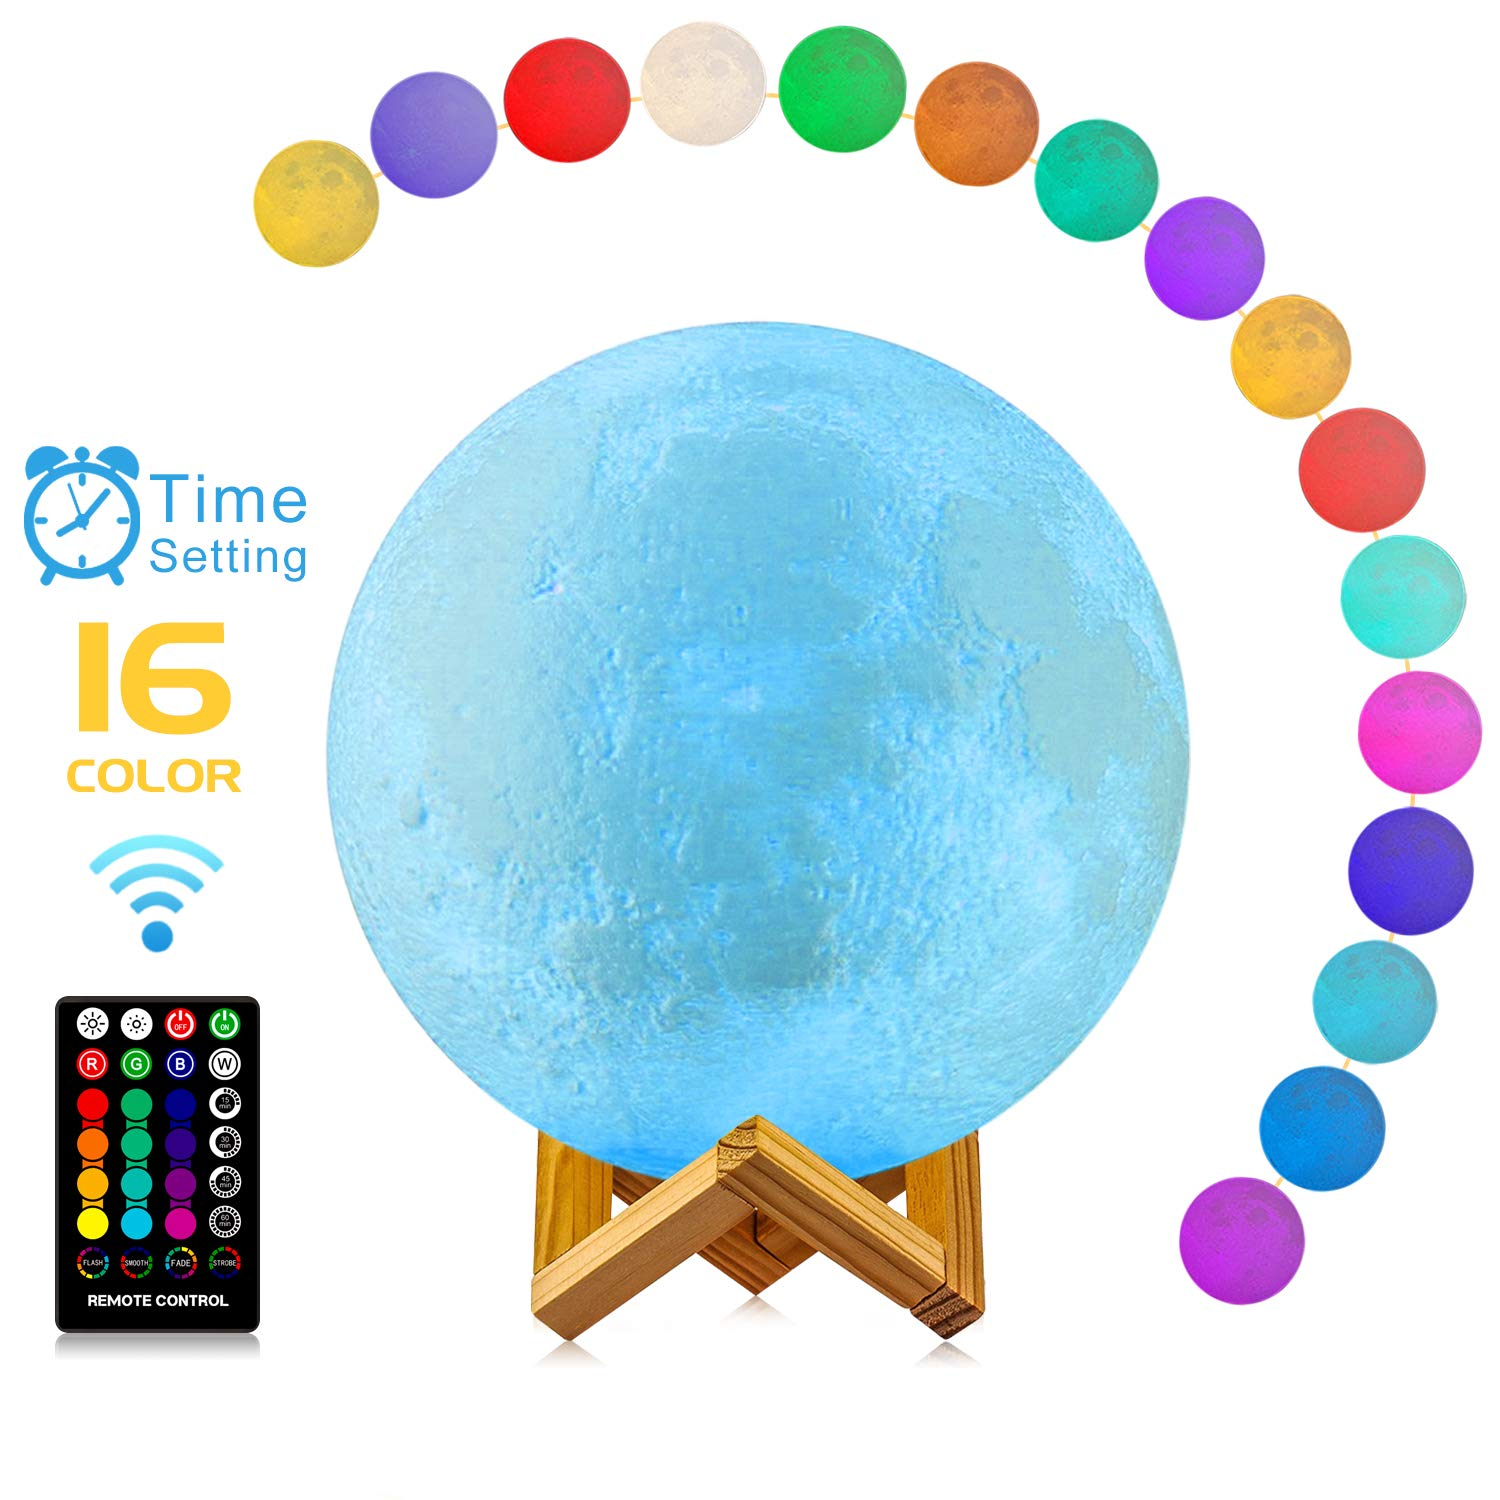 Diameter 9.6 inch Hung Up Decorative Night Lights for Birthday Baby Kids Party Christmas Gifts LOGROTATE Moon Light Lamps with Time Setting and Stand 3D Print LED 16 Colors Moon Lamp